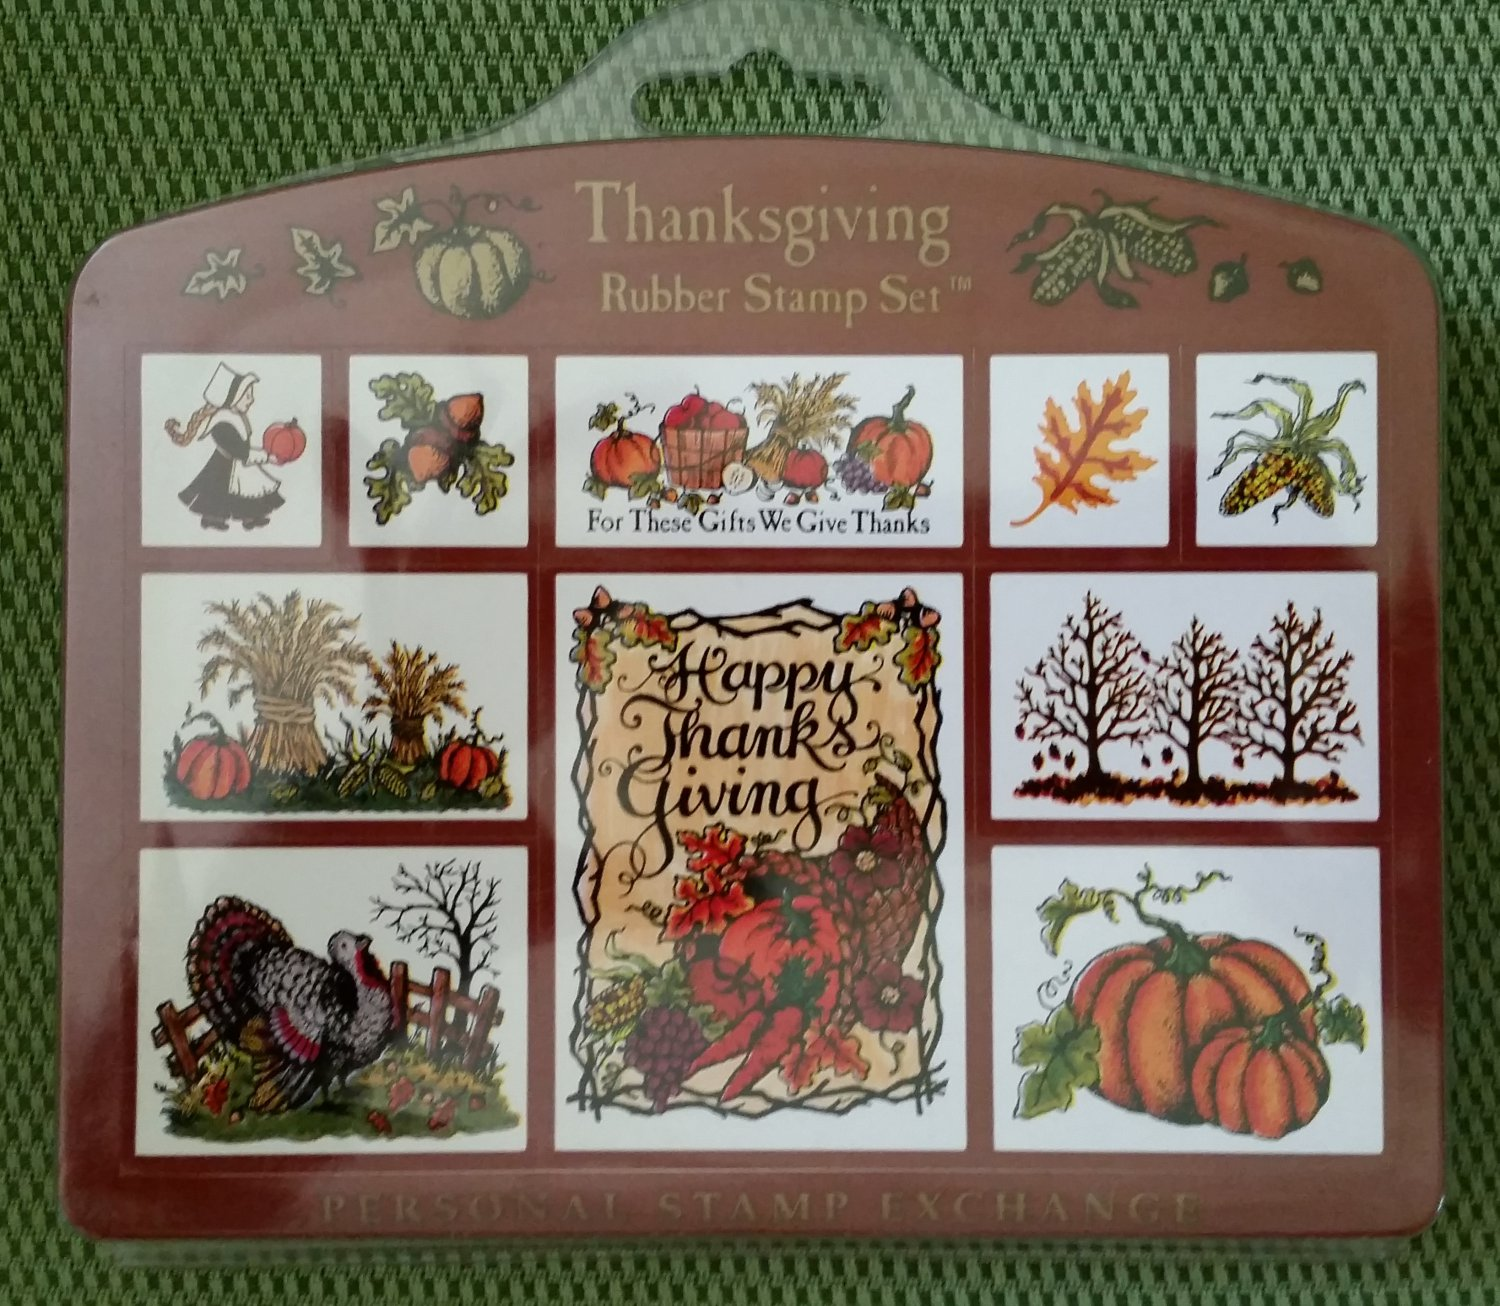 Thanksgiving 9 Piece Rubber Stamp Set by Personal Stamp Exchange #SK137 - MADE IN USA - NEW!